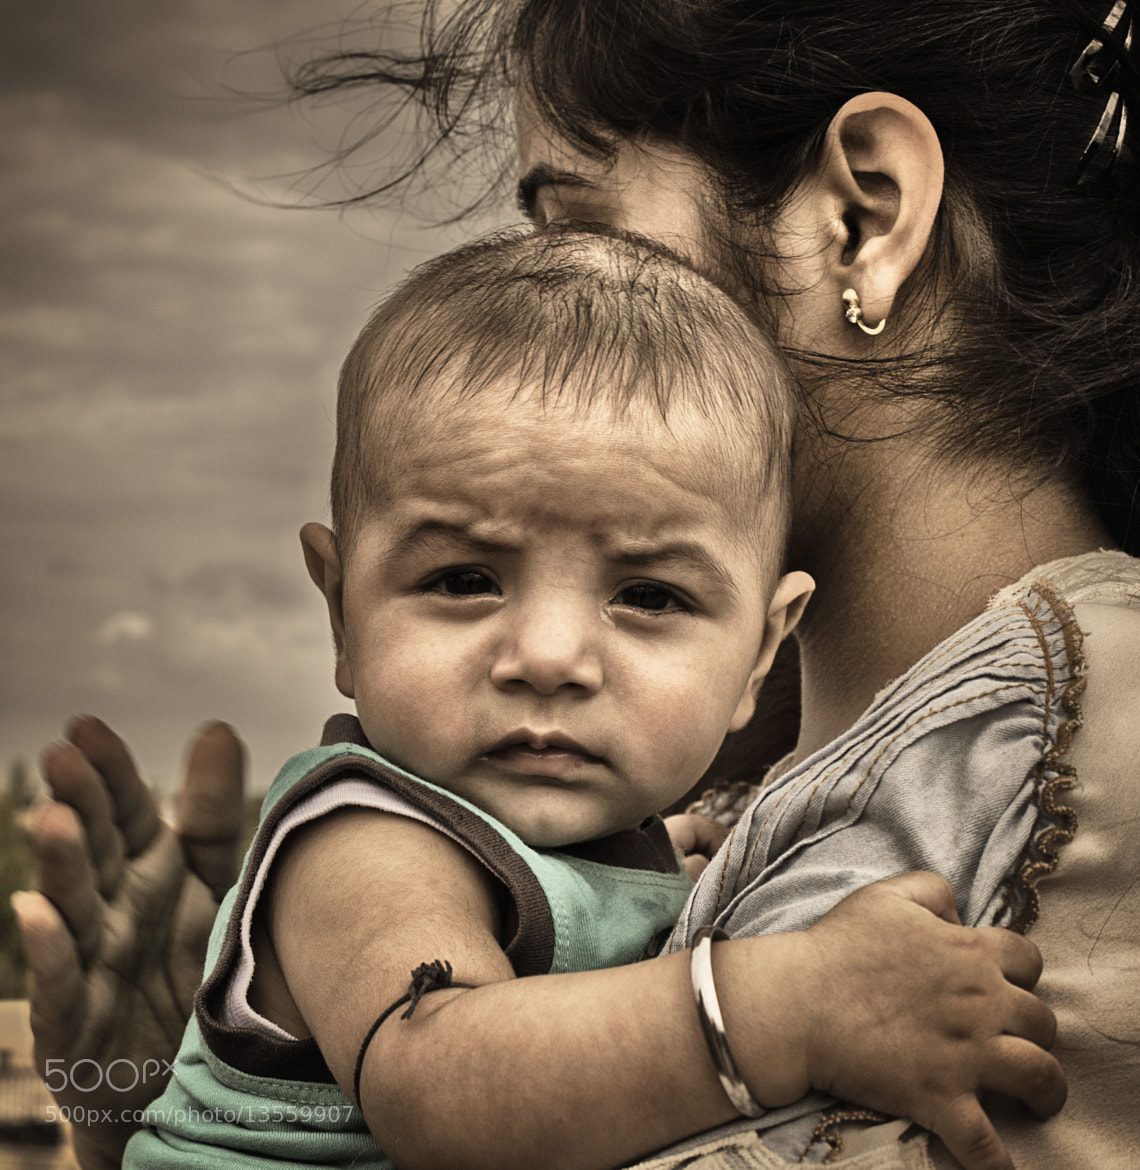 Photograph Innocence Unplugged! by Kunal Khurana on 500px